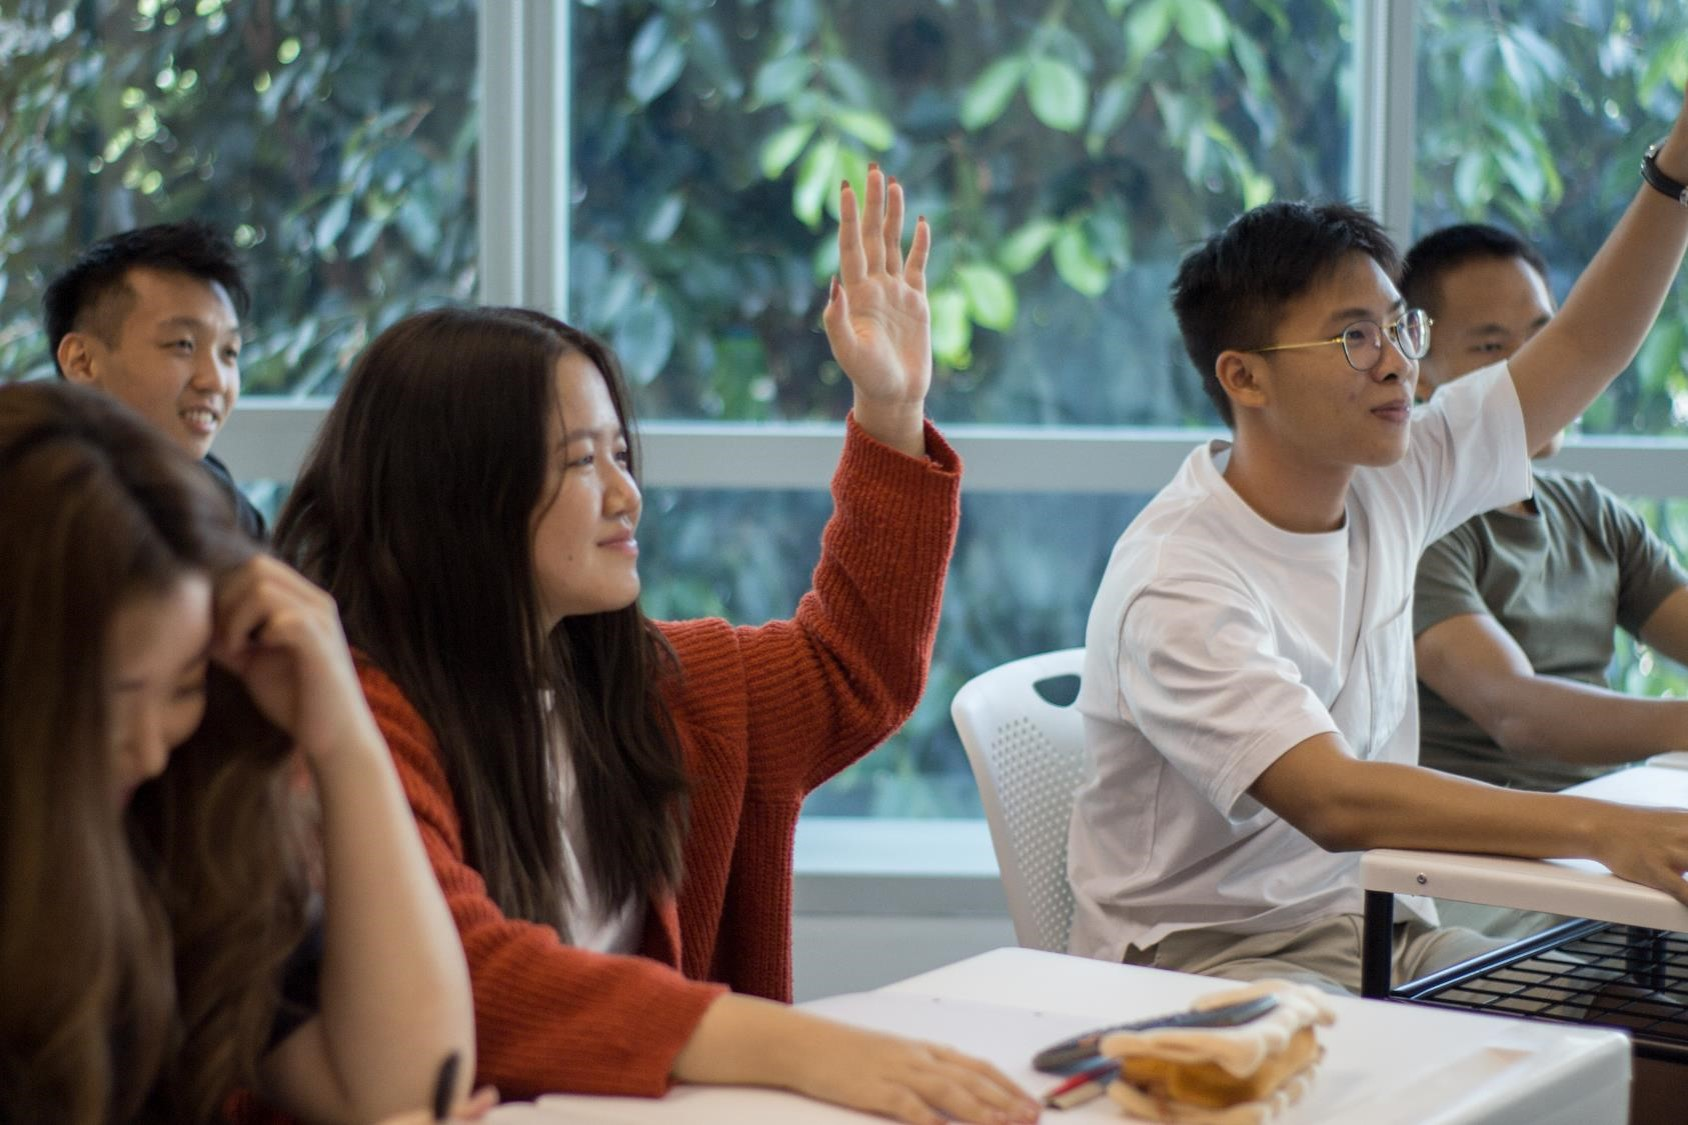 a level physics tuition singapore Knowledge Tap Academy Face to Face Lectures